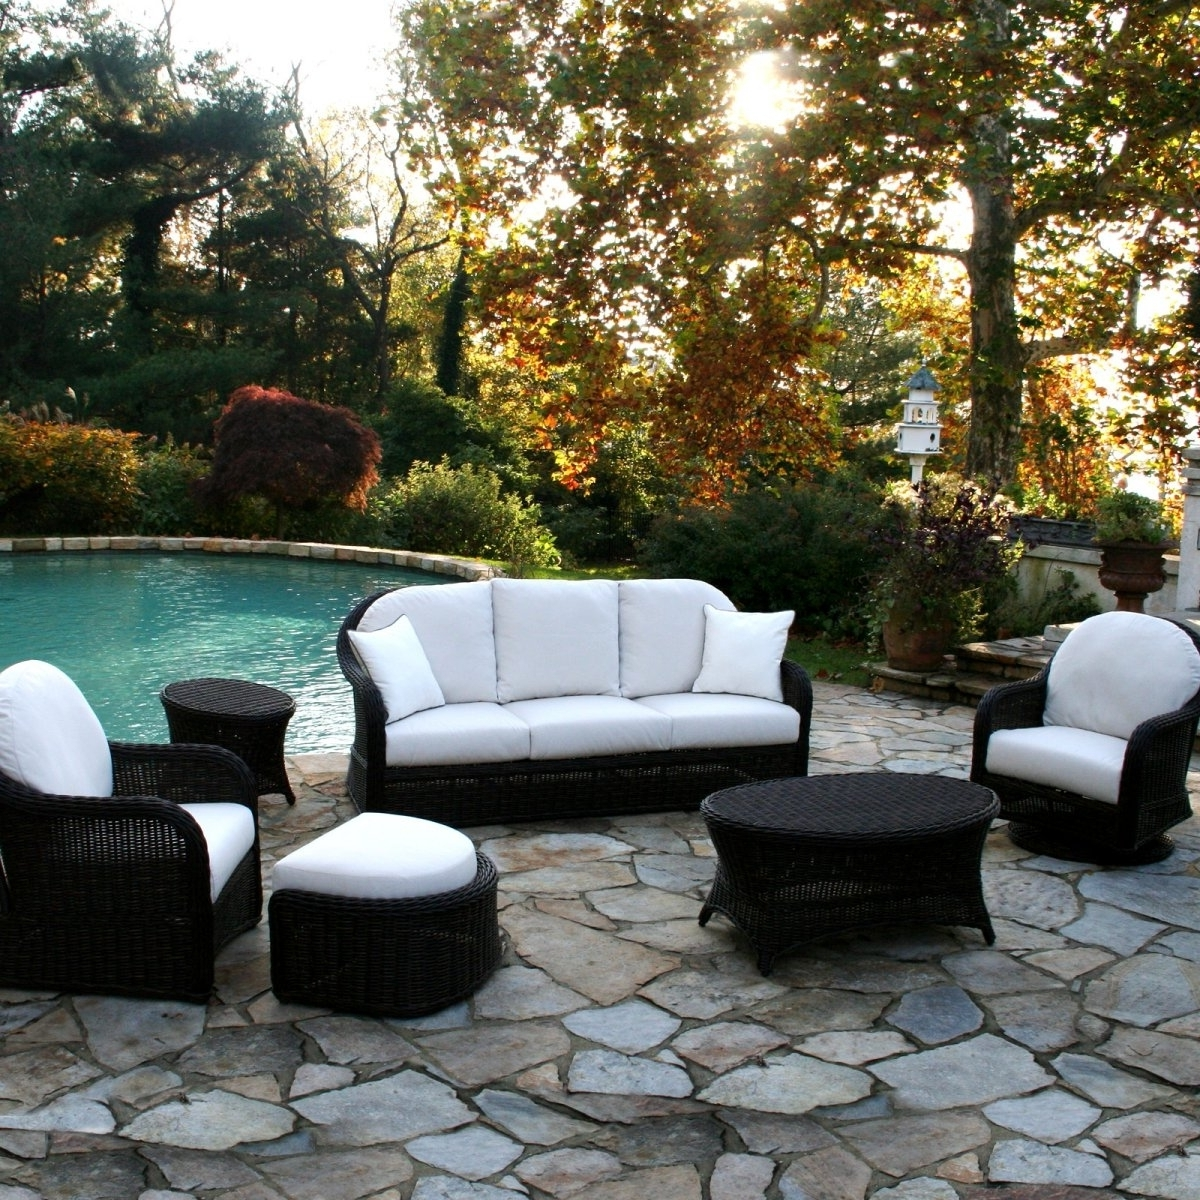 Widely Used Patio Conversation Sets With Swivel Chairs Inside Conversation Chairs Patio Furniture Lowes Patio Conversation Sets (View 20 of 20)